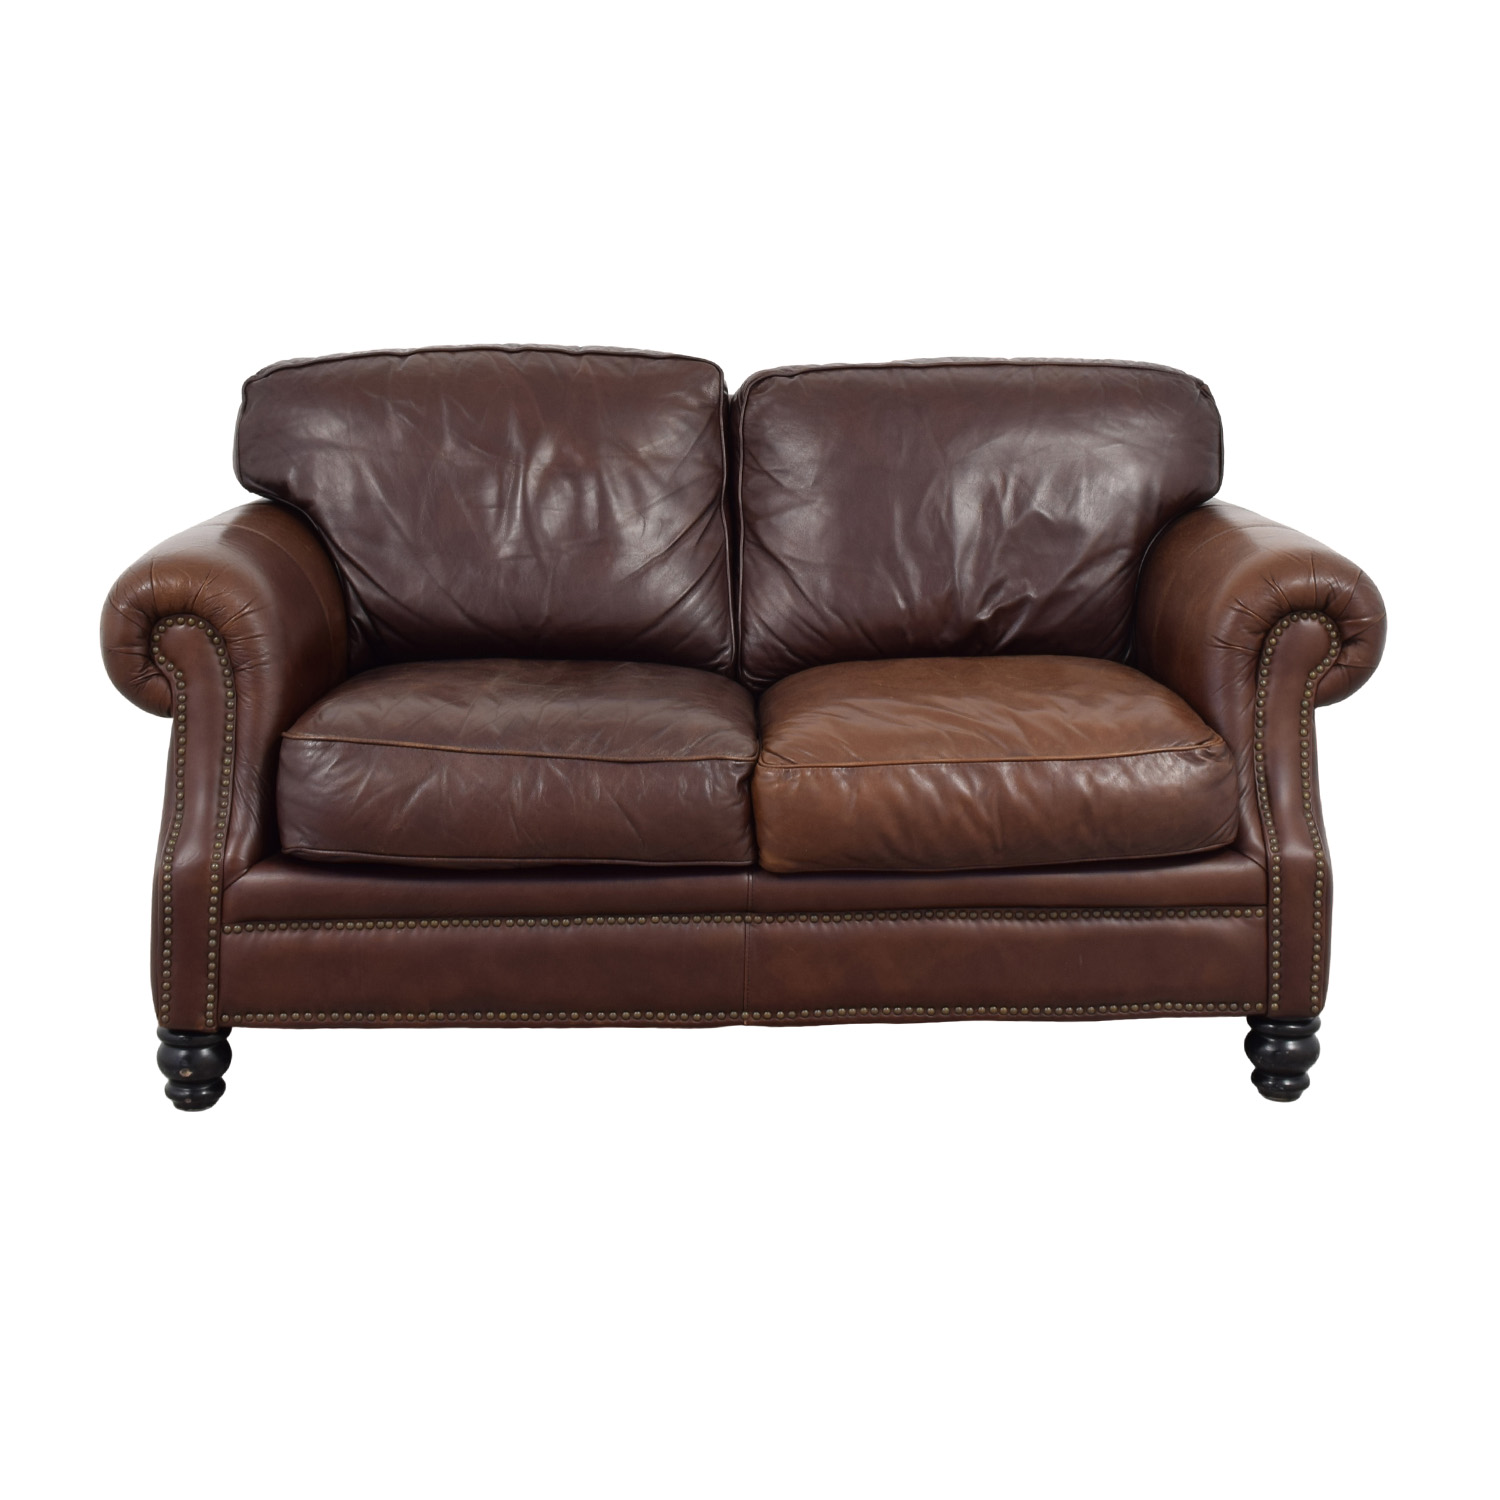 Charmant Bloomingdales Bloomingdales Brown Leather Loveseat Discount ...